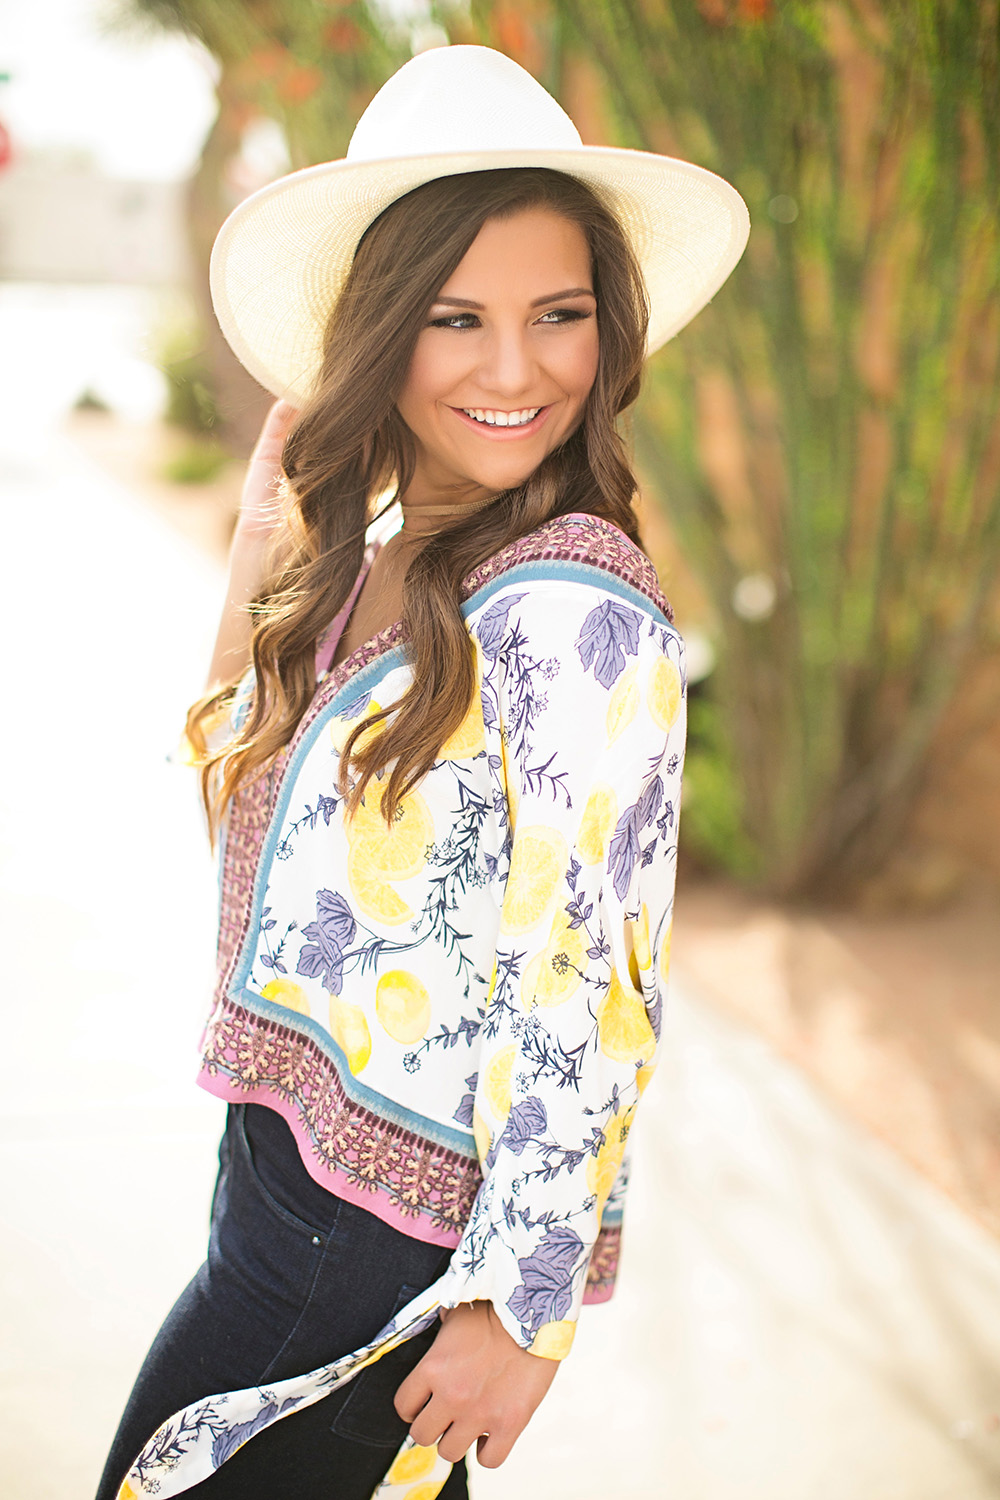 abby-texas-tech-grad-boho-styled-photo-03.jpg